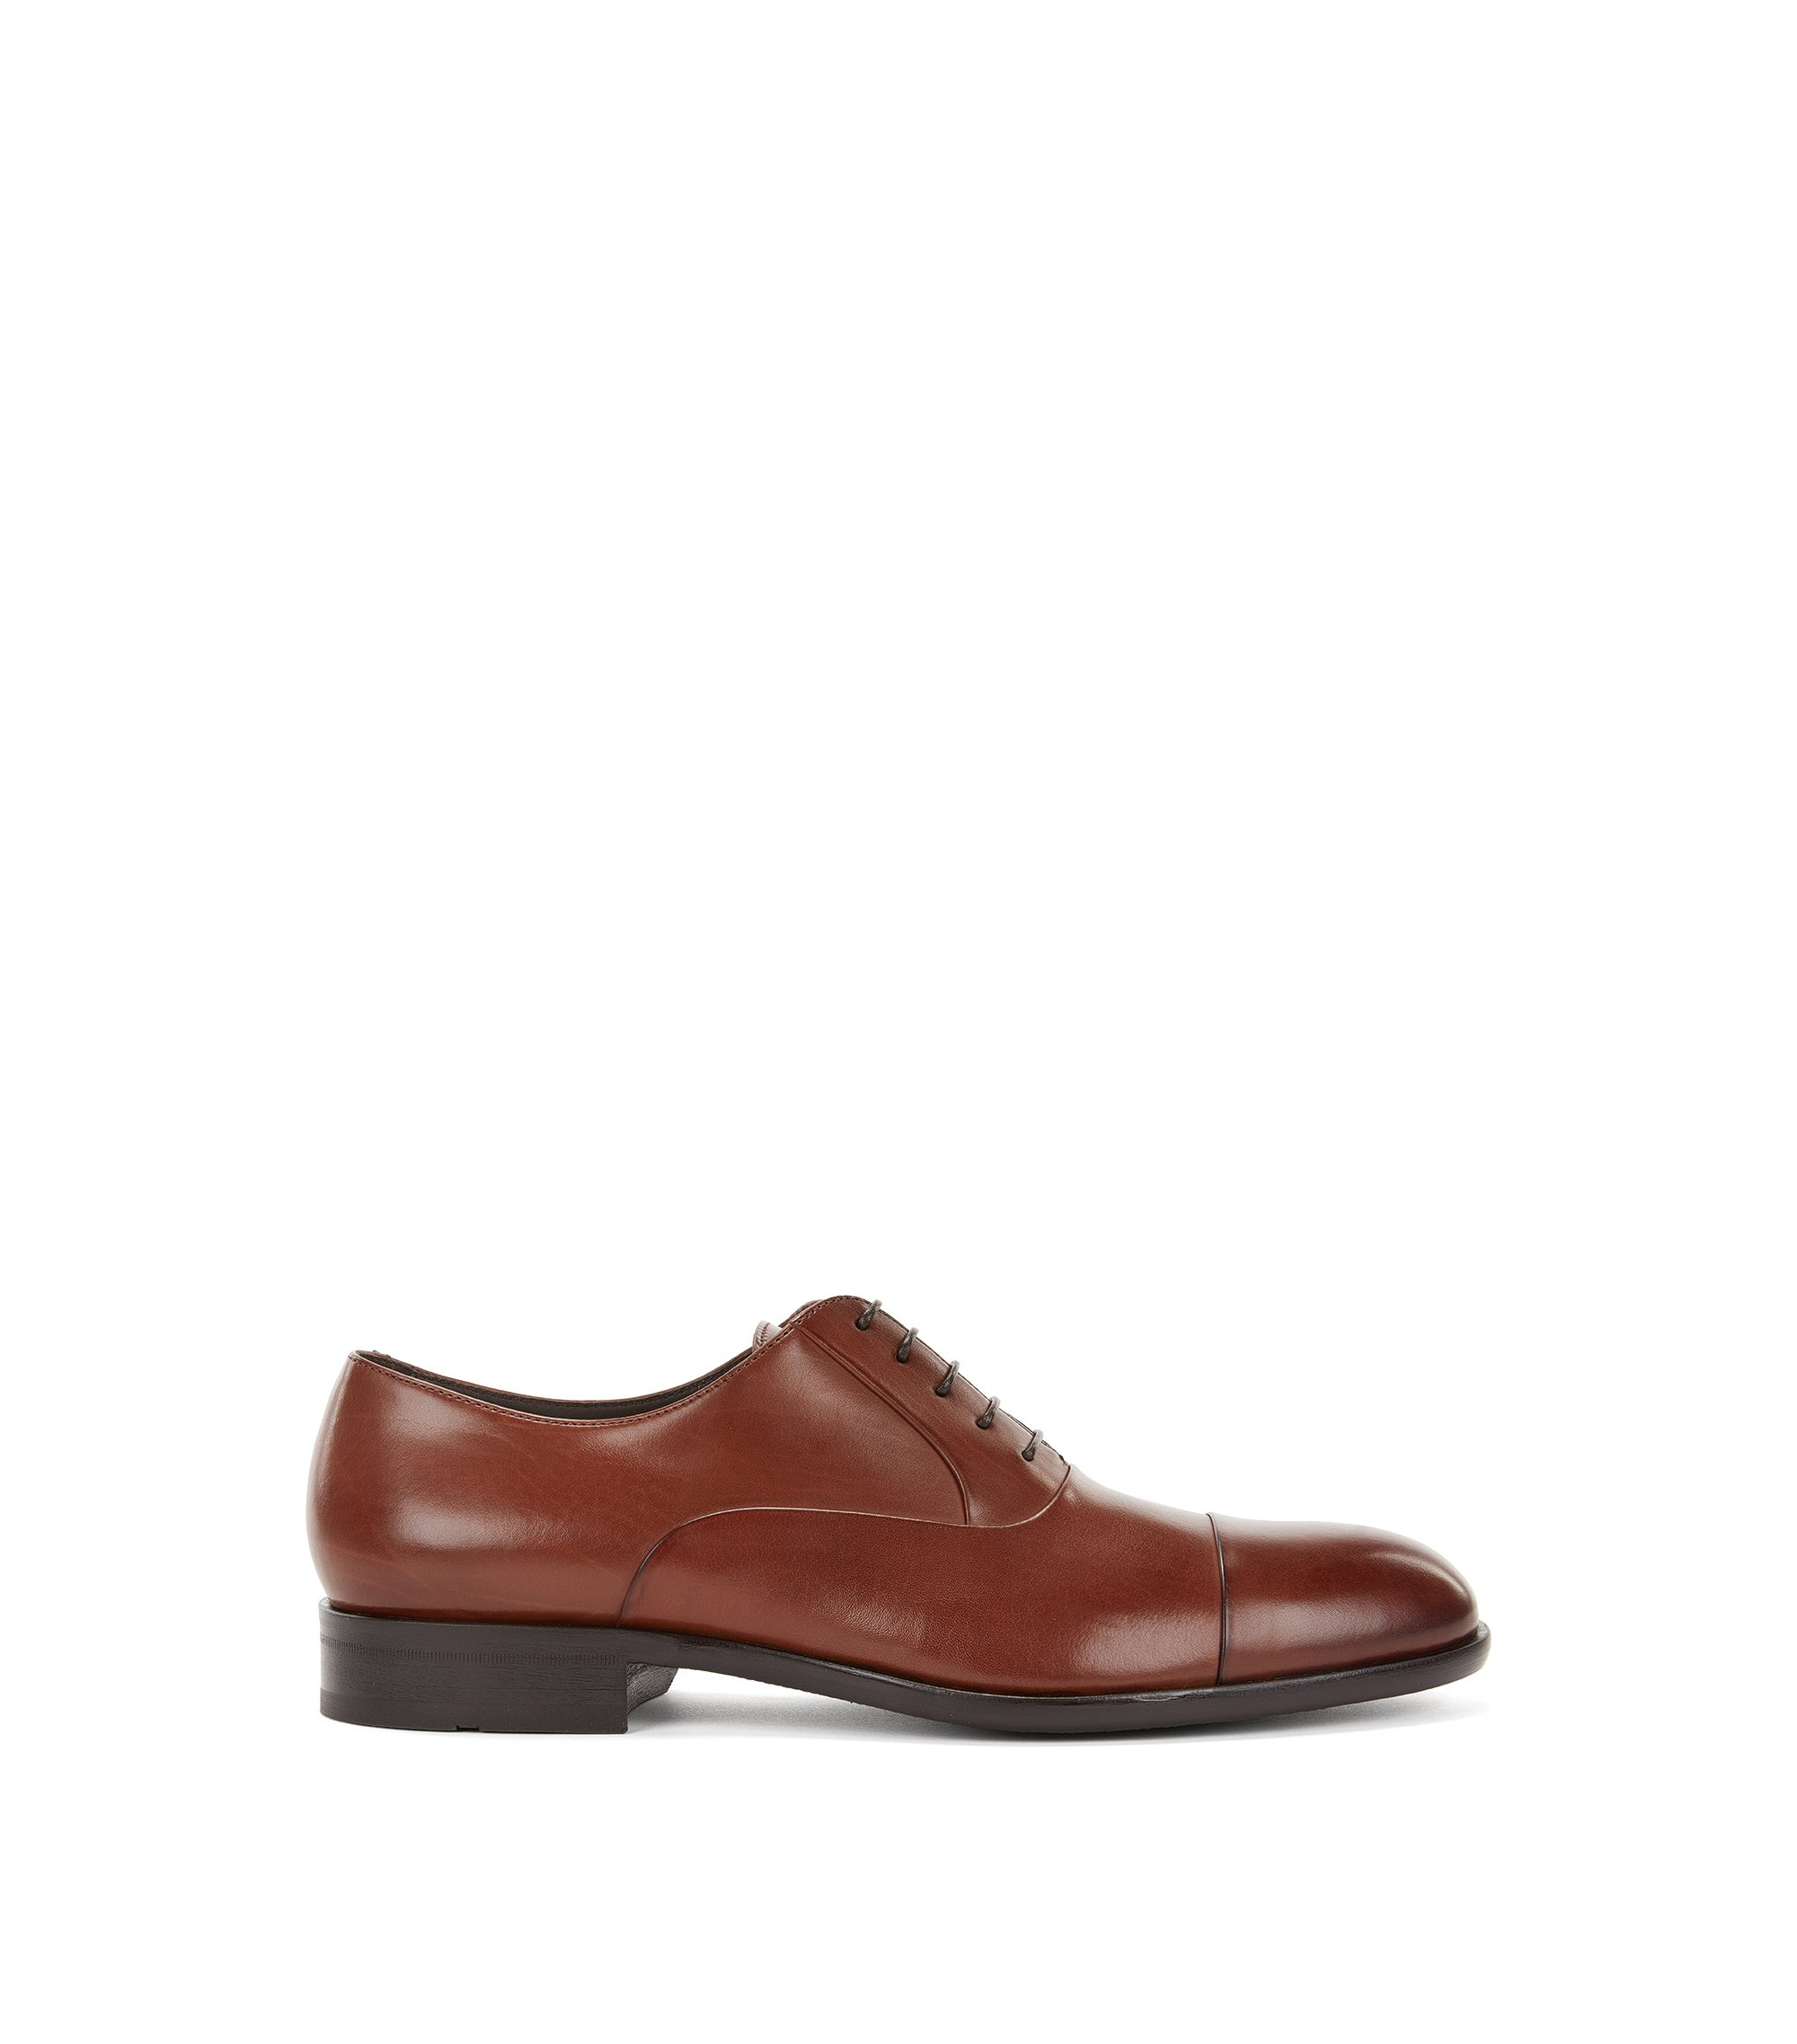 Lace-up Oxford shoes in polished leather, Marrone